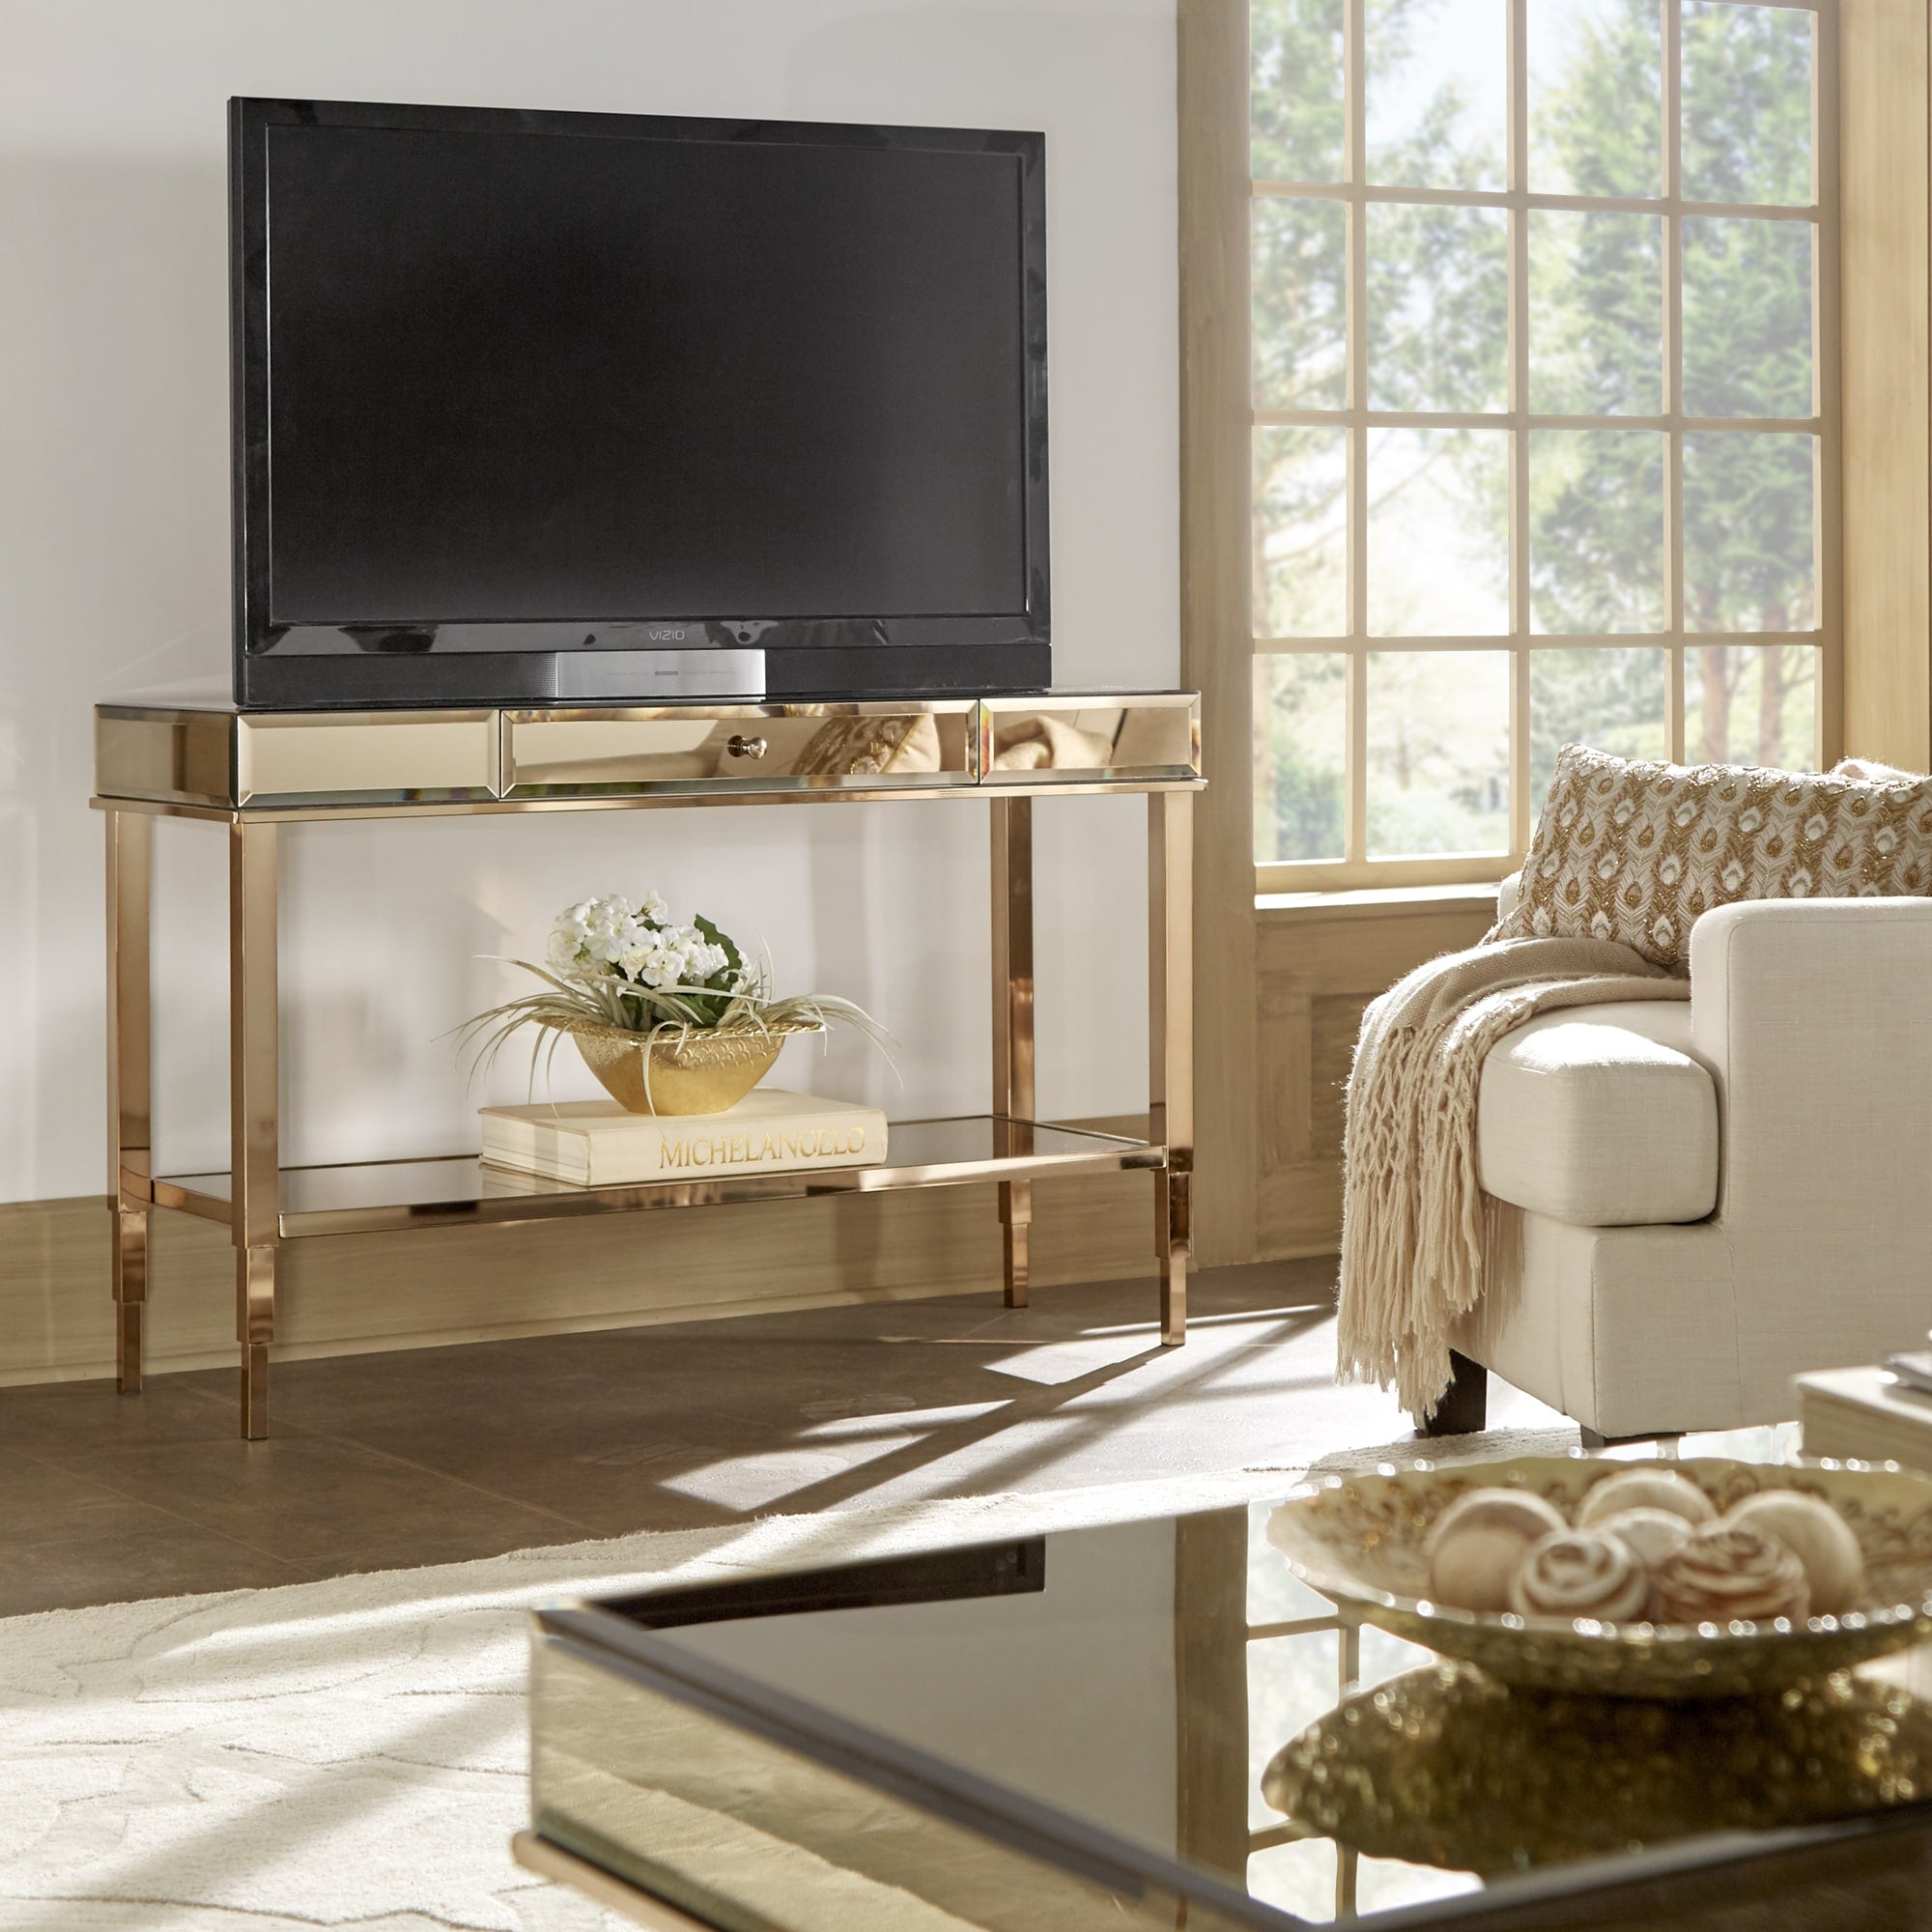 Mirrored TV Stand Console Table with Drawer